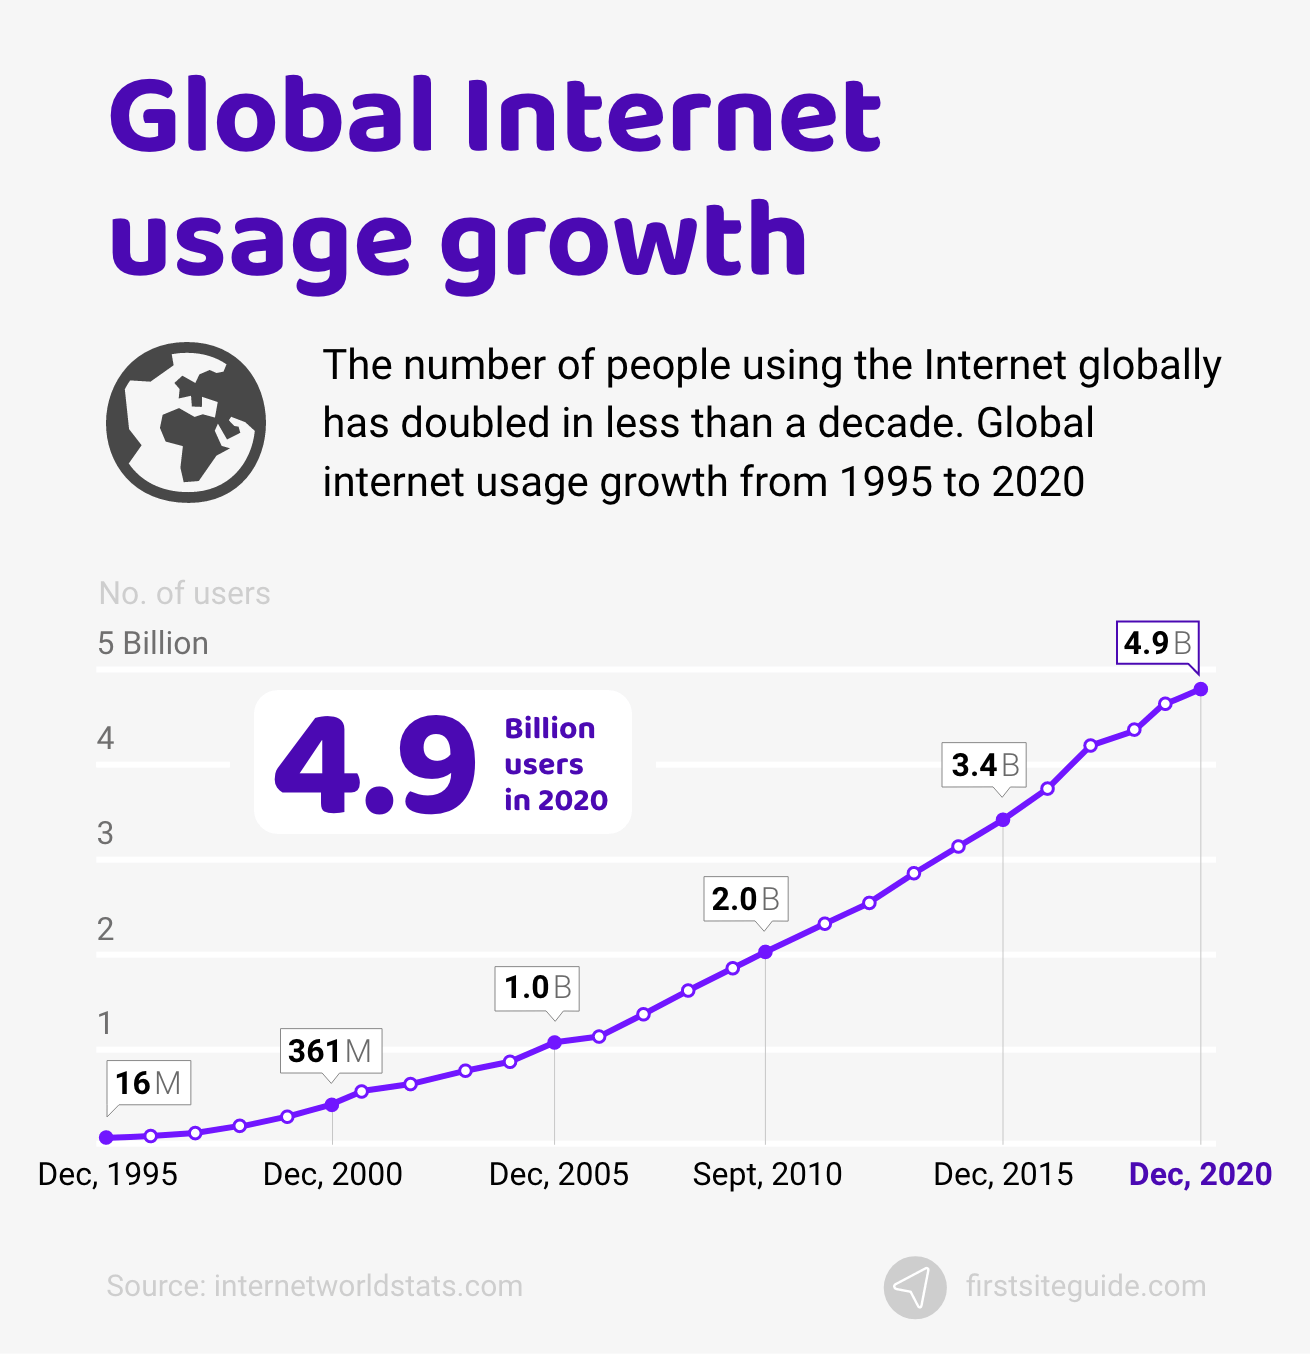 Global Internet usage